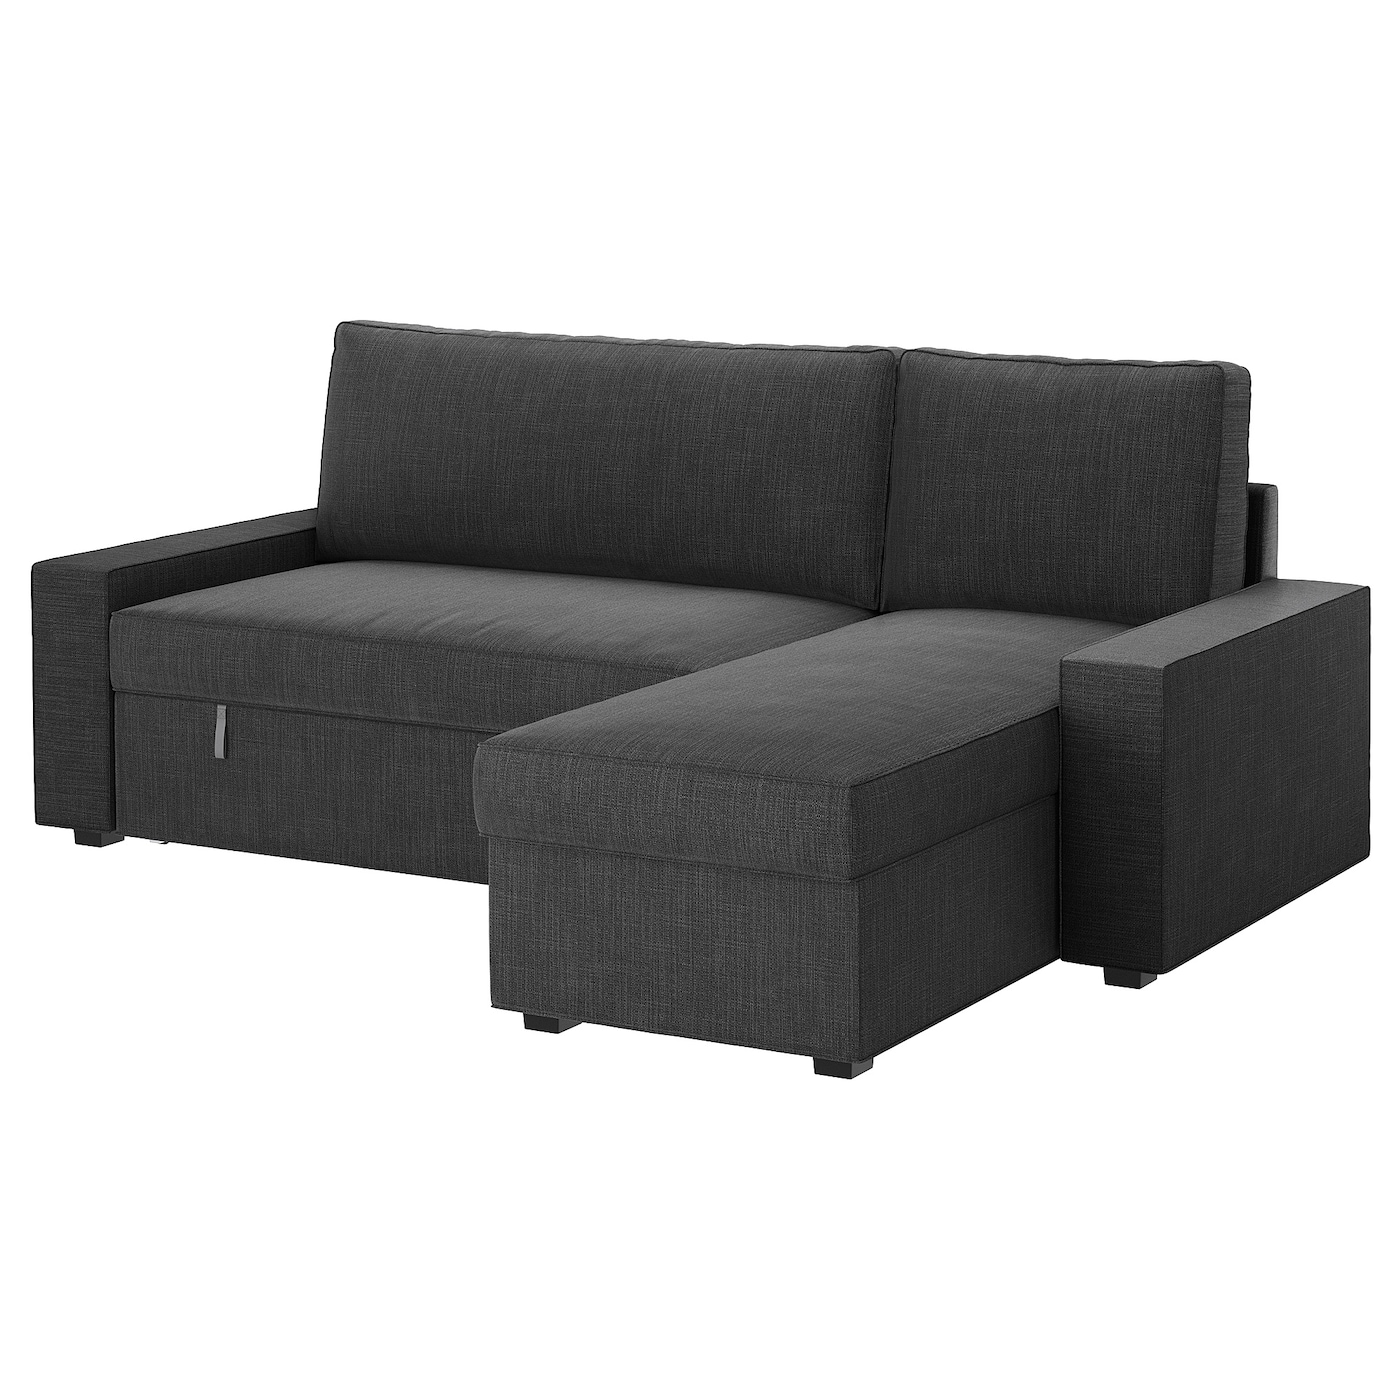 Vilasund sofa bed with chaise longue hillared anthracite for Sofa cama con almacenaje